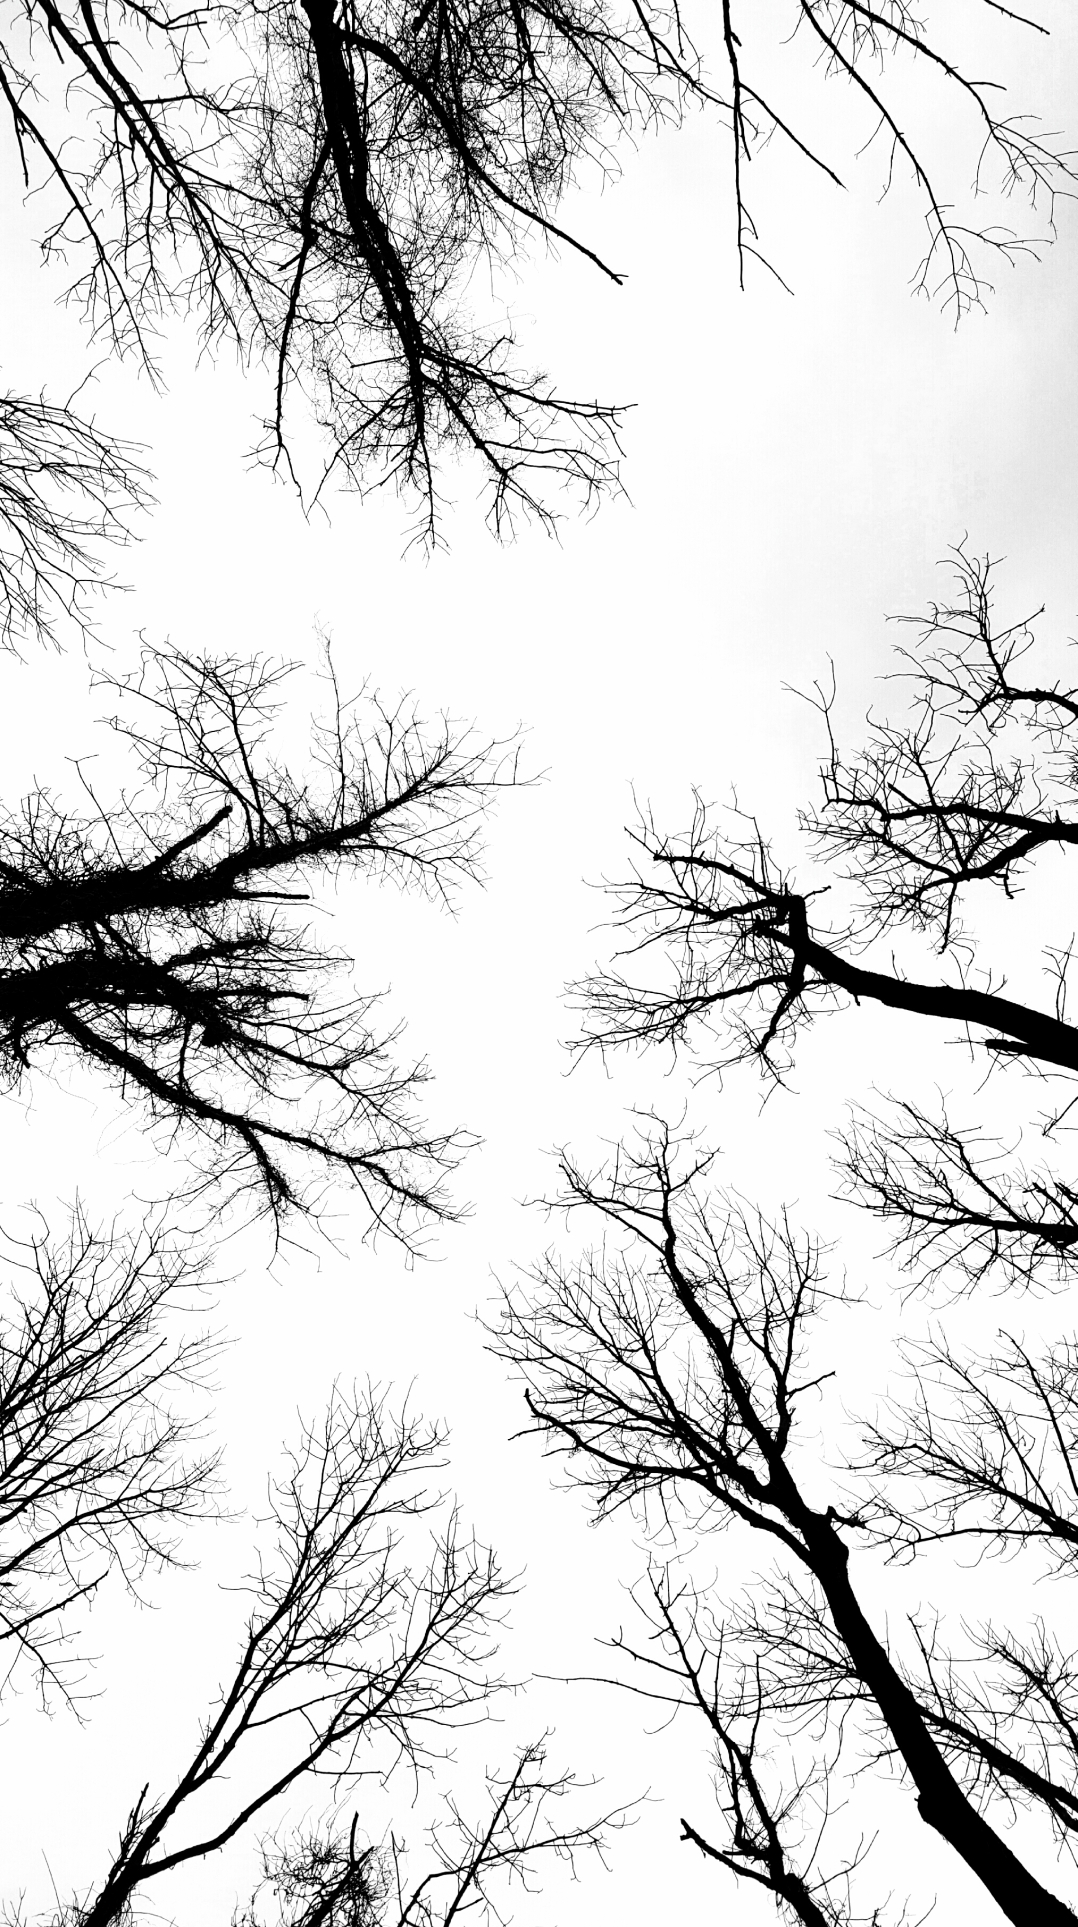 trees-that-looks-like-neurons-1